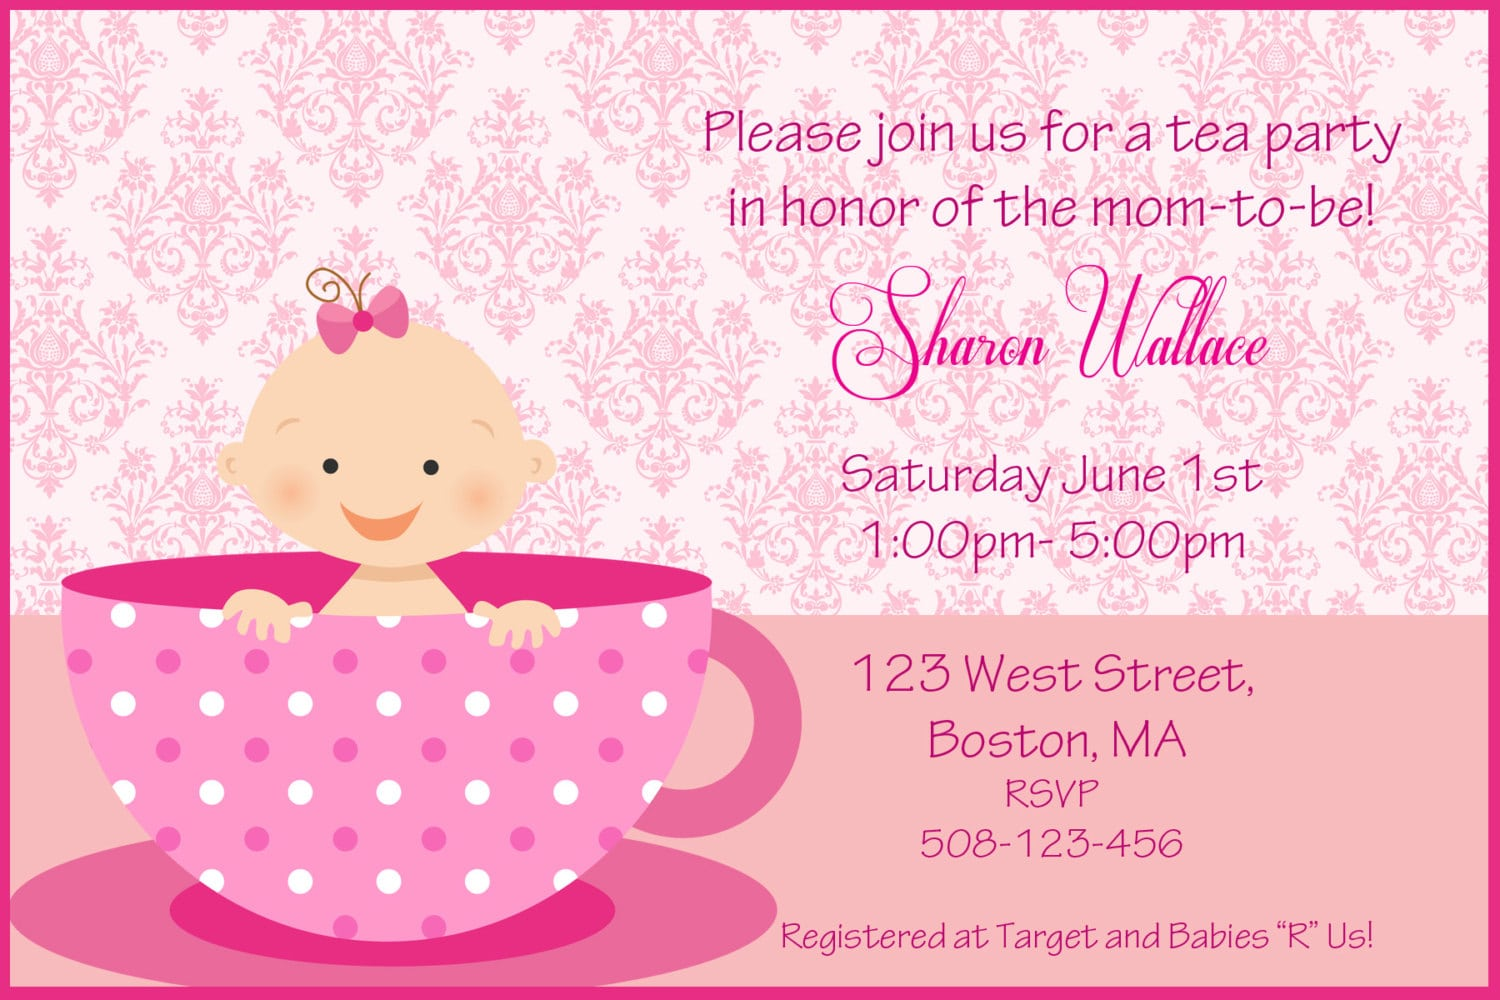 Making Great Tea Party Baby Shower Invitations !